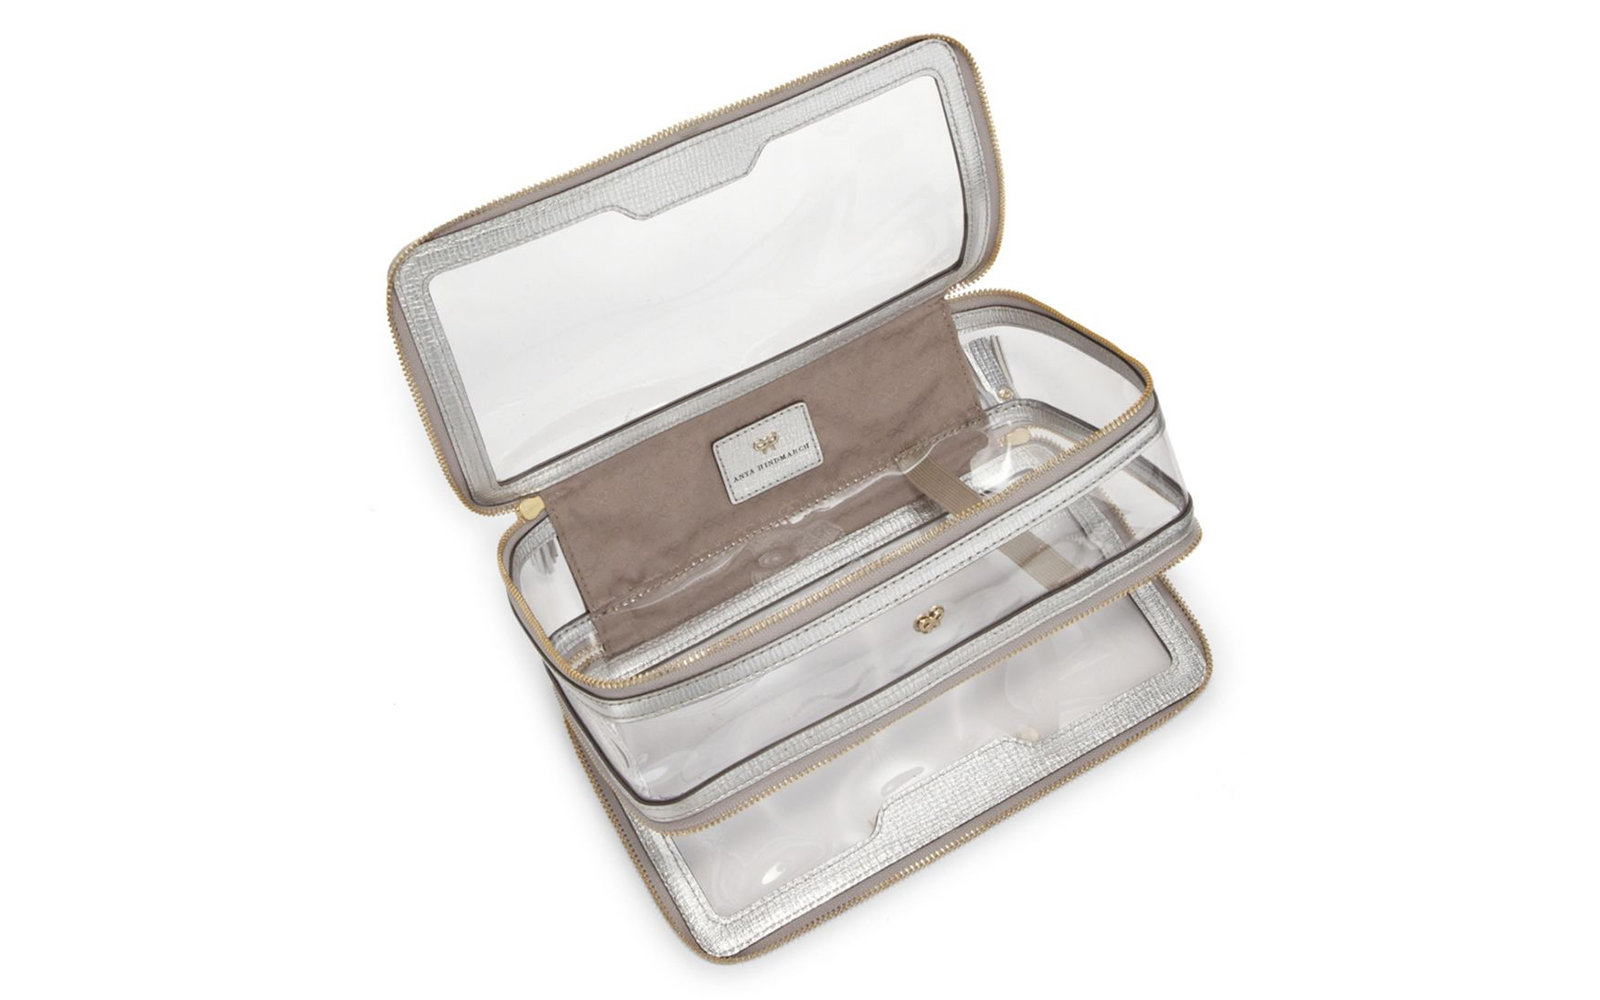 Anya Hindmarch Inflight Case